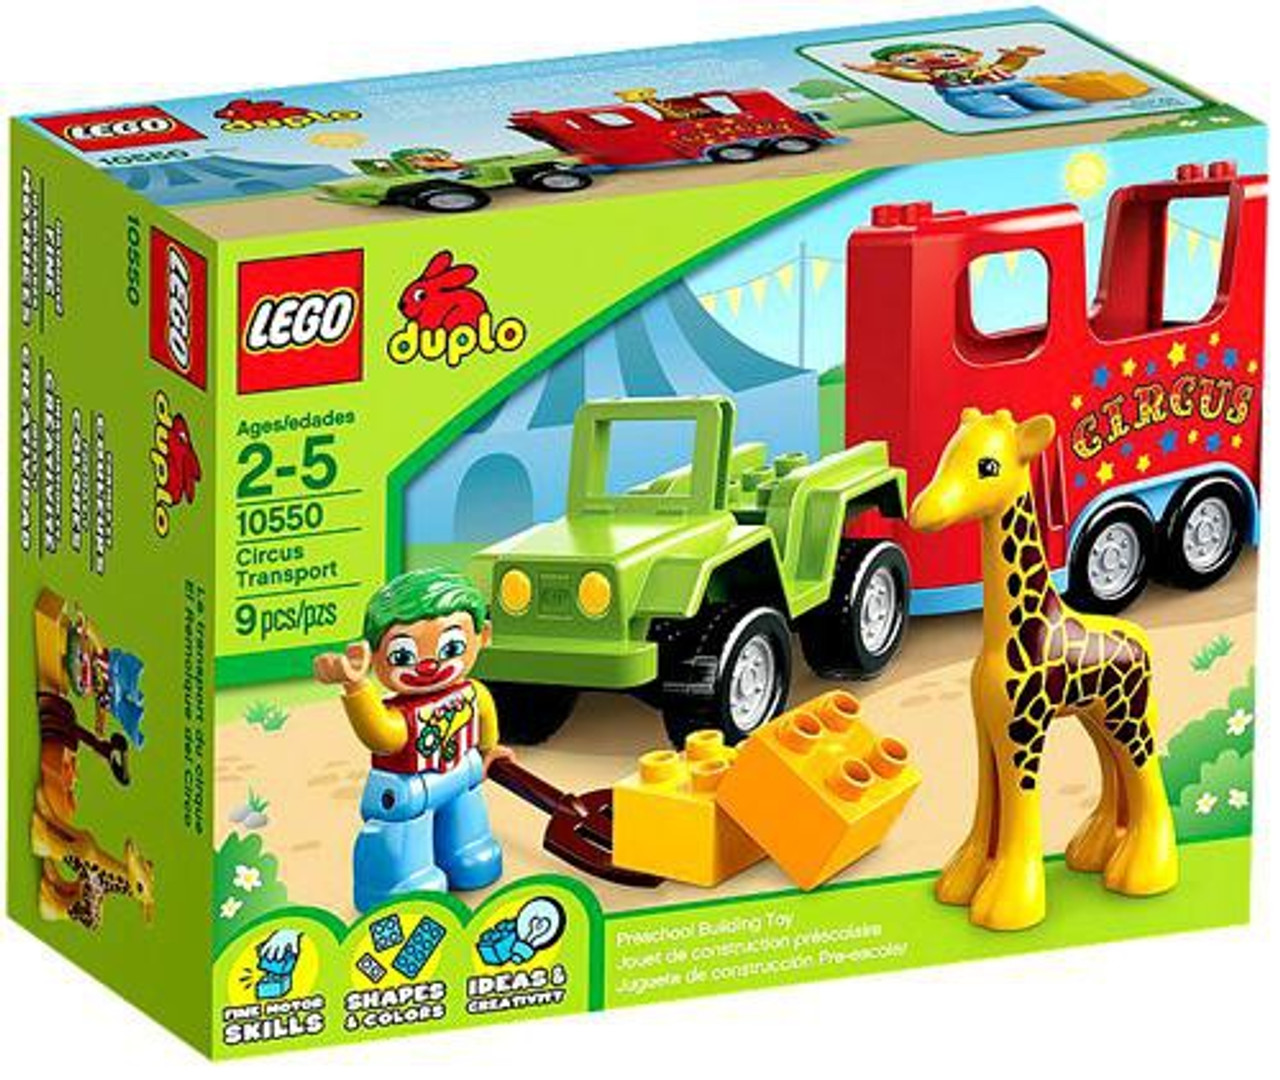 LEGO Duplo Circus Transport Set #10550